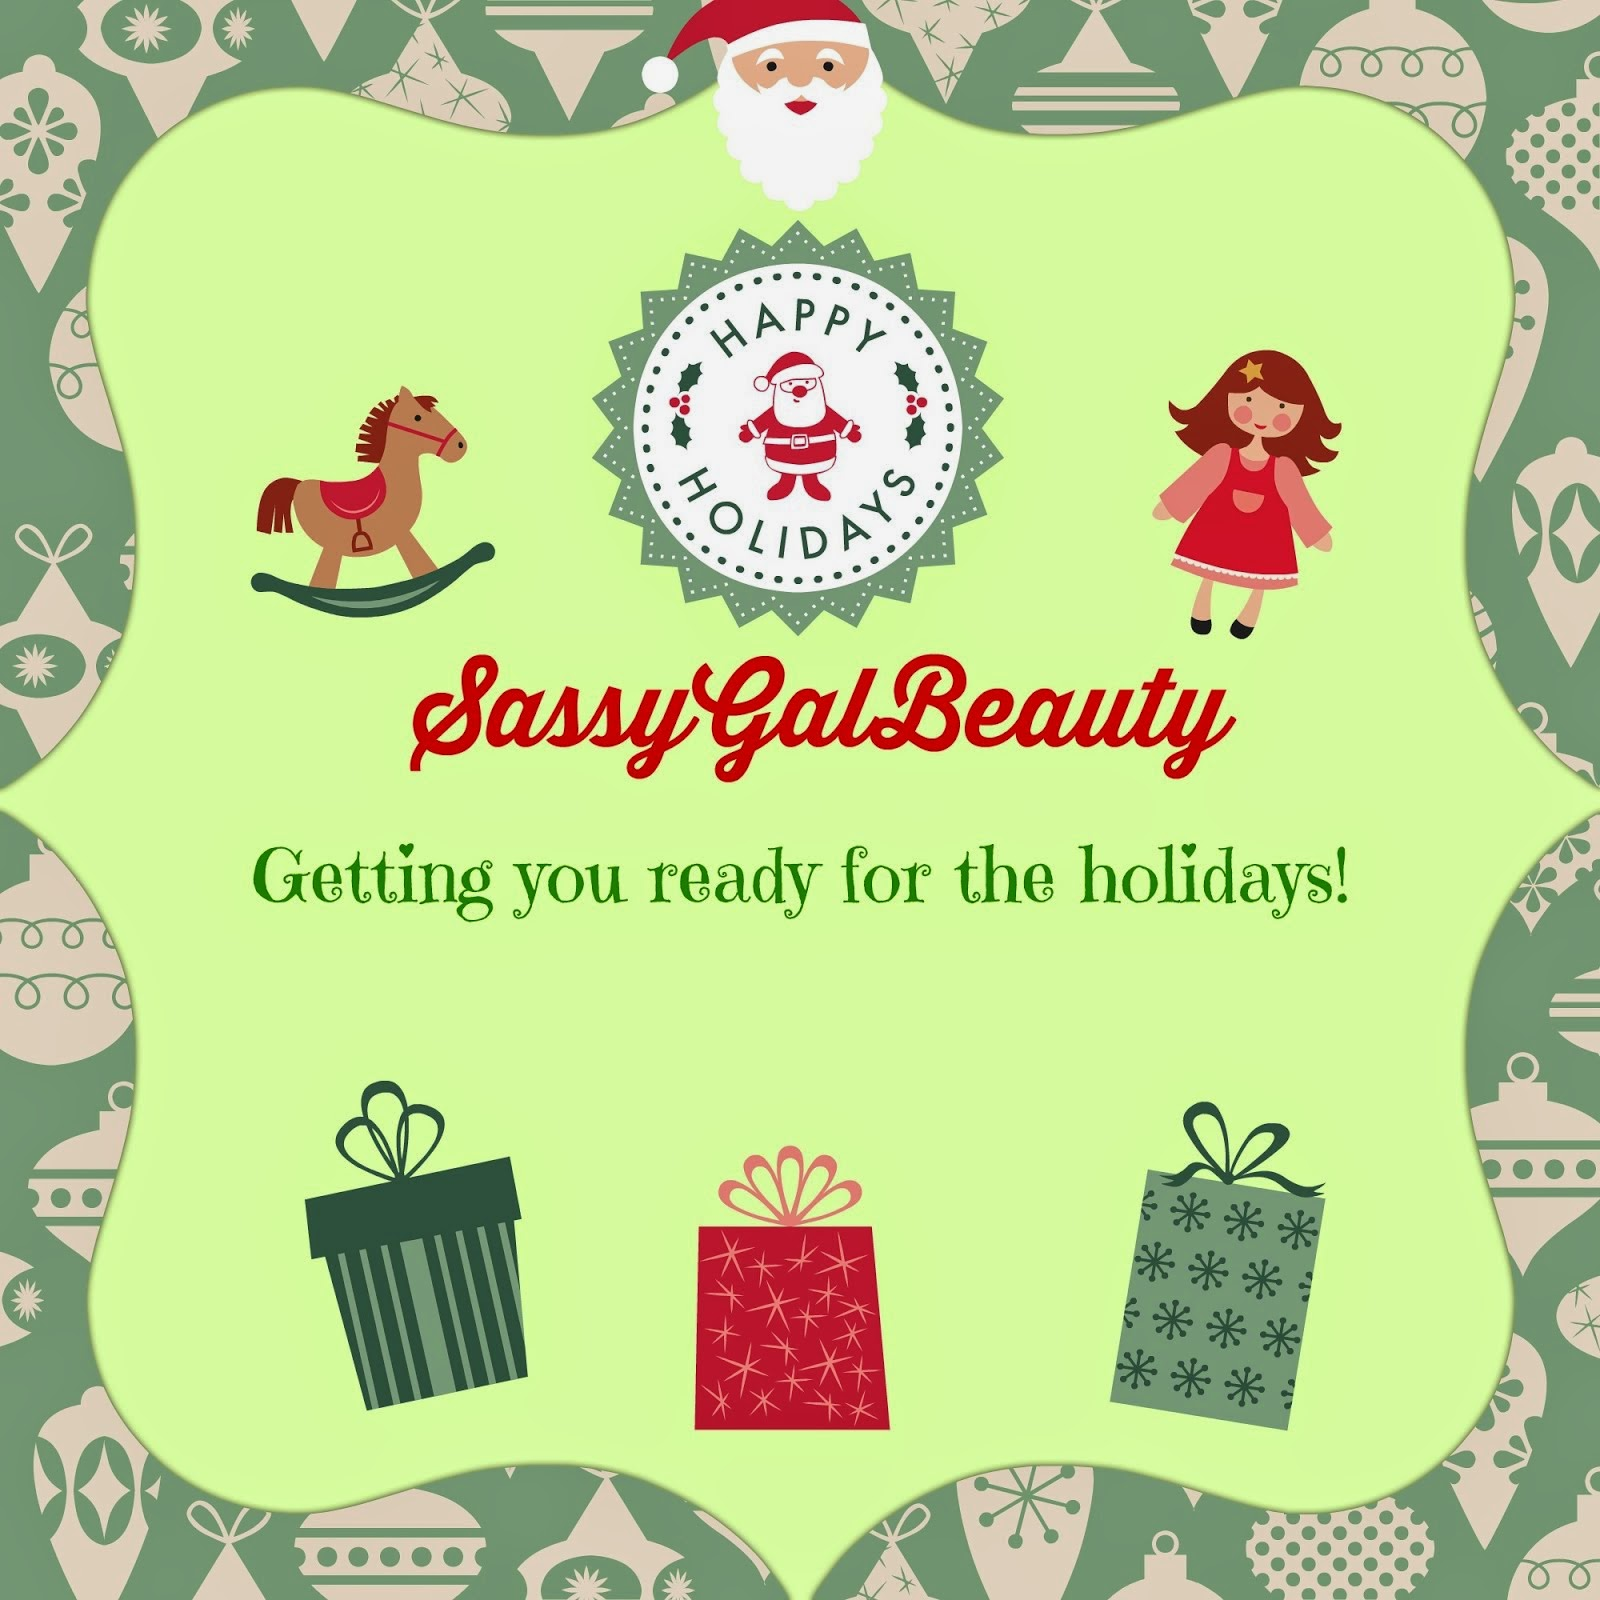 SassyGalBeauty Holiday Gift Guide 2014